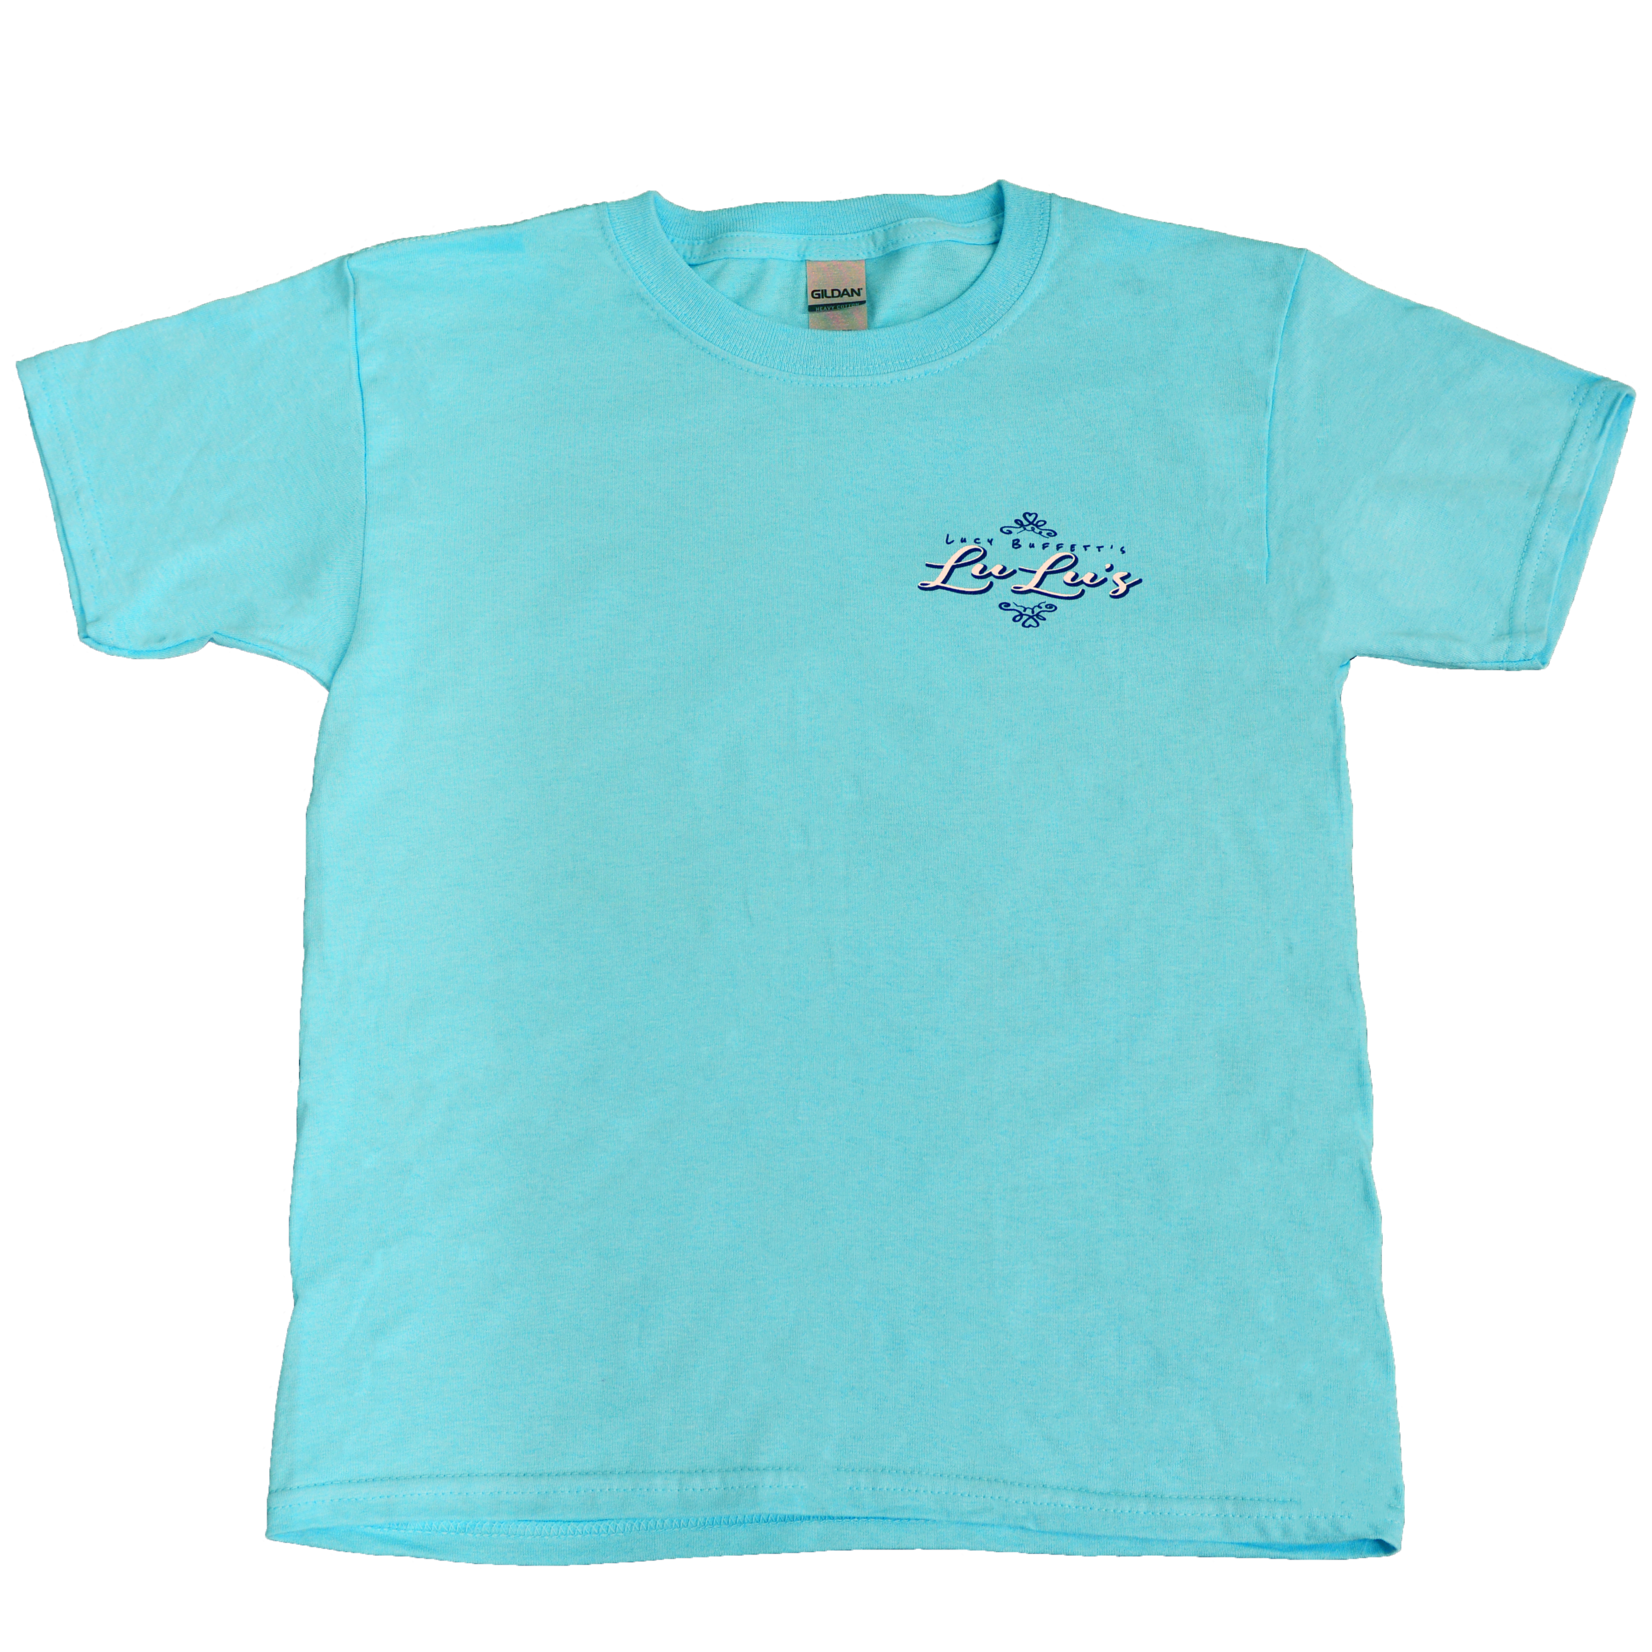 Youth Beach Buddies Tee